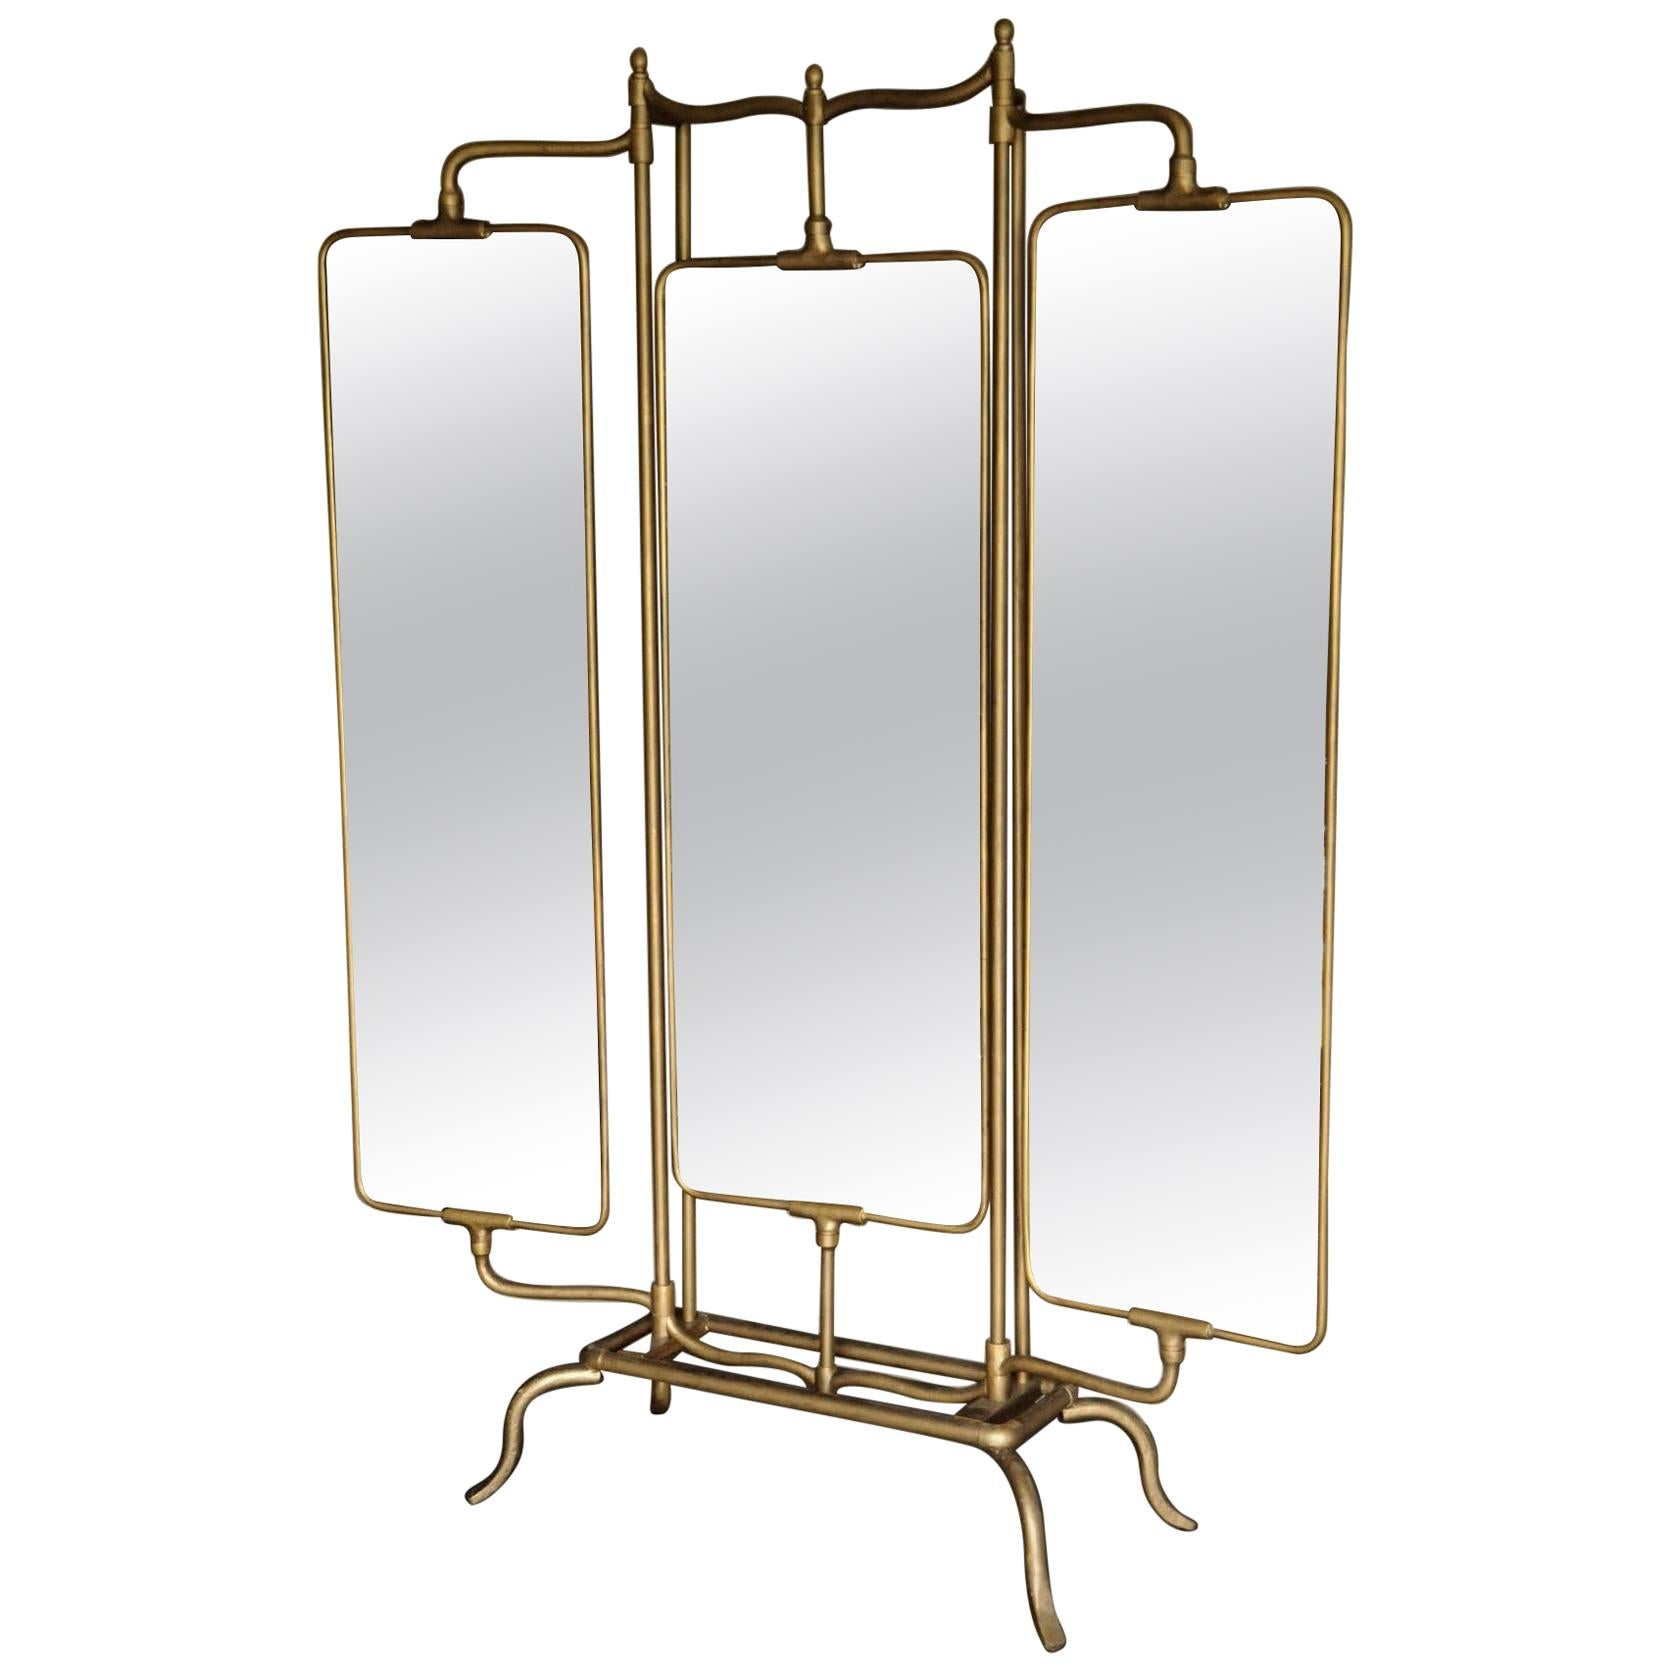 Adjustable Floor Triptych and Psyche Brass Mirror in Antique Style